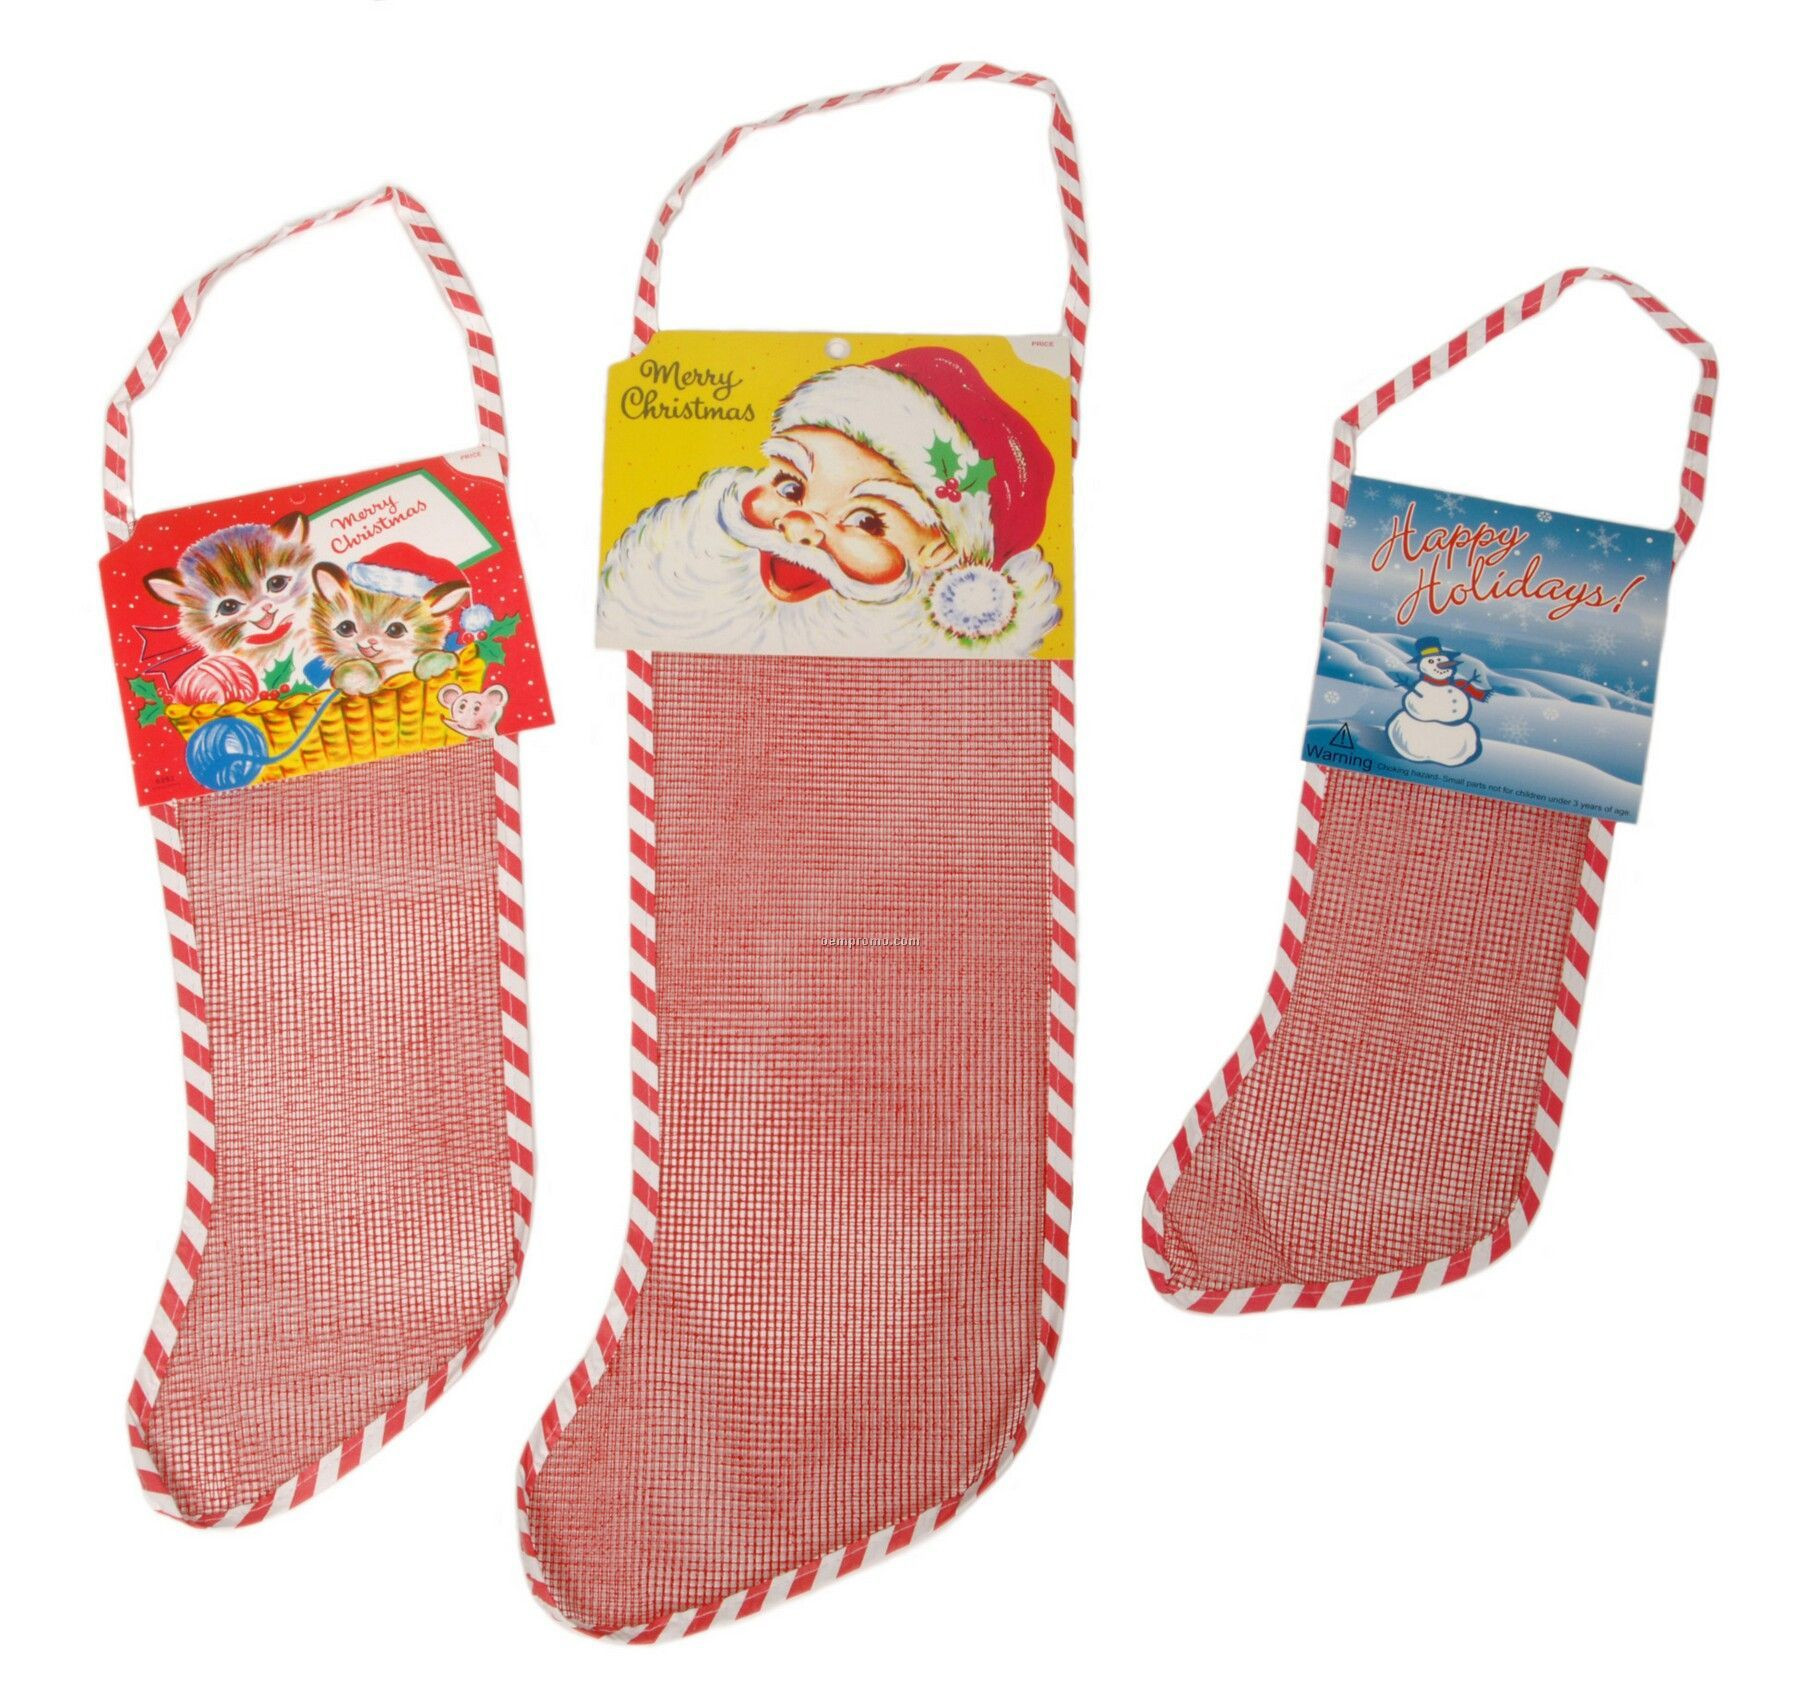 Candy Filled Christmas Stockings Wholesale  Stockings China Wholesale Stockings